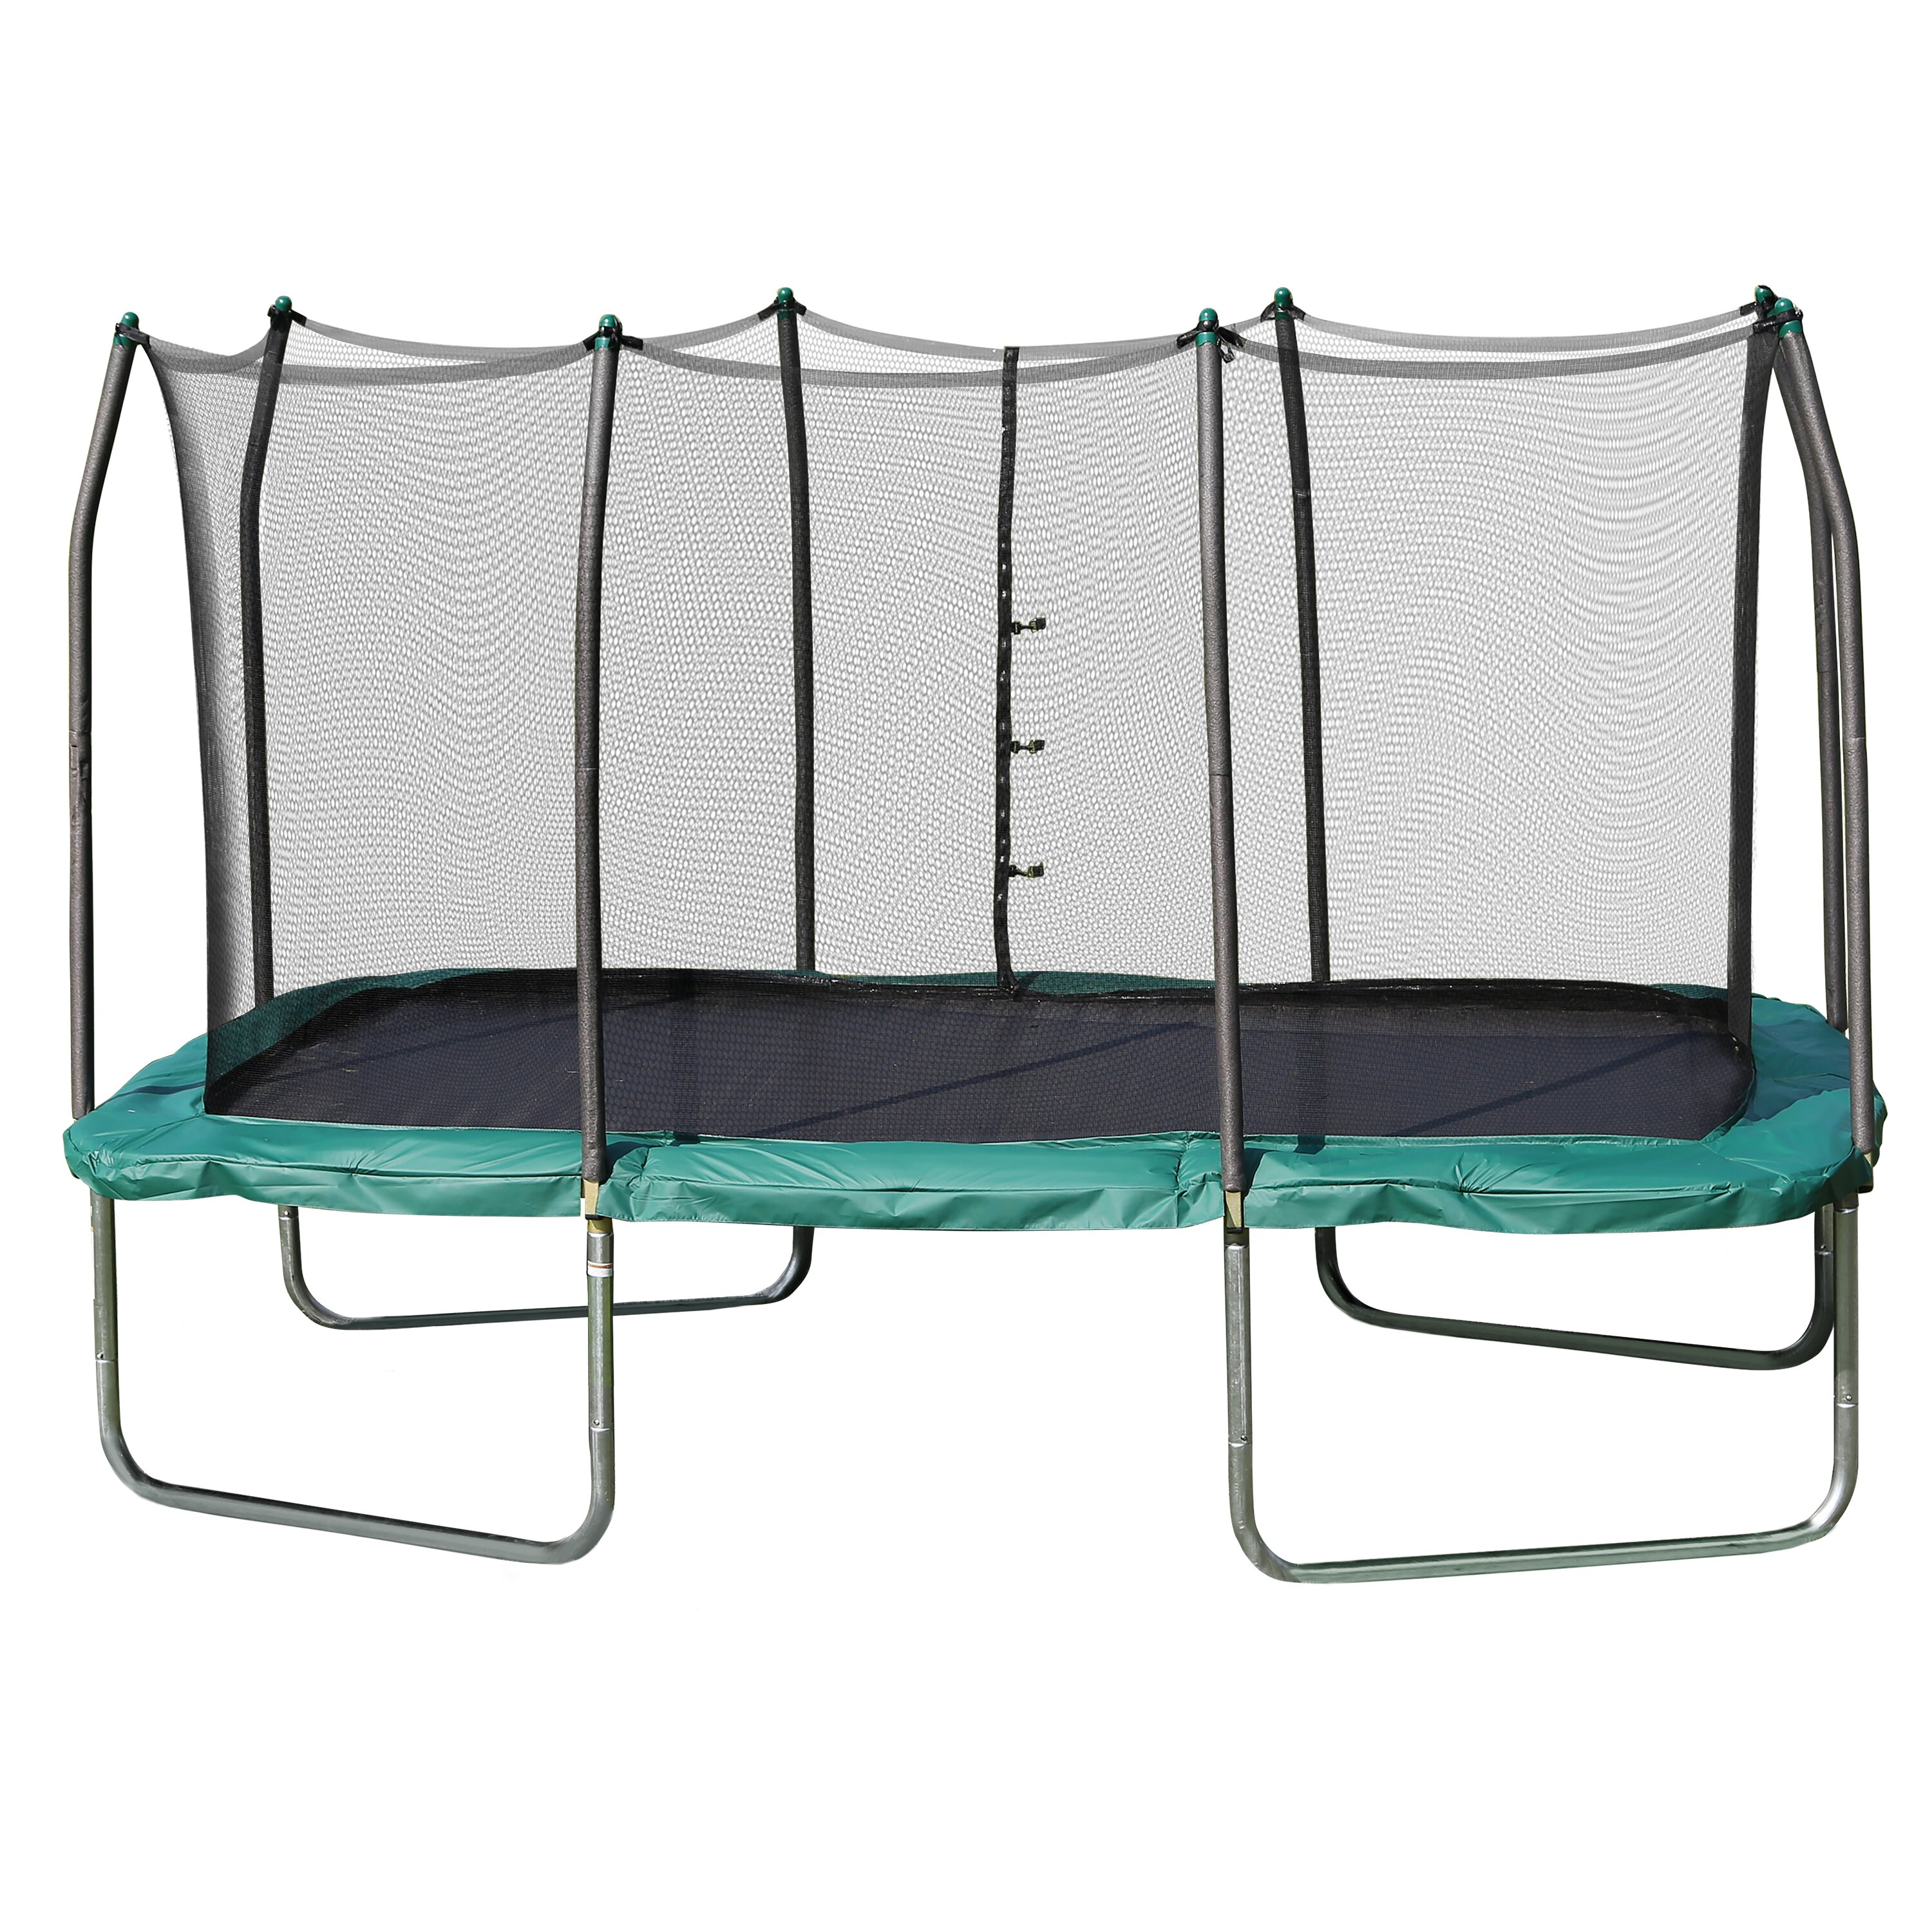 Skywalker 14 Foot Square Trampoline And Enclosure With: Skywalker Summit 14' Rectangle Trampoline With Safety